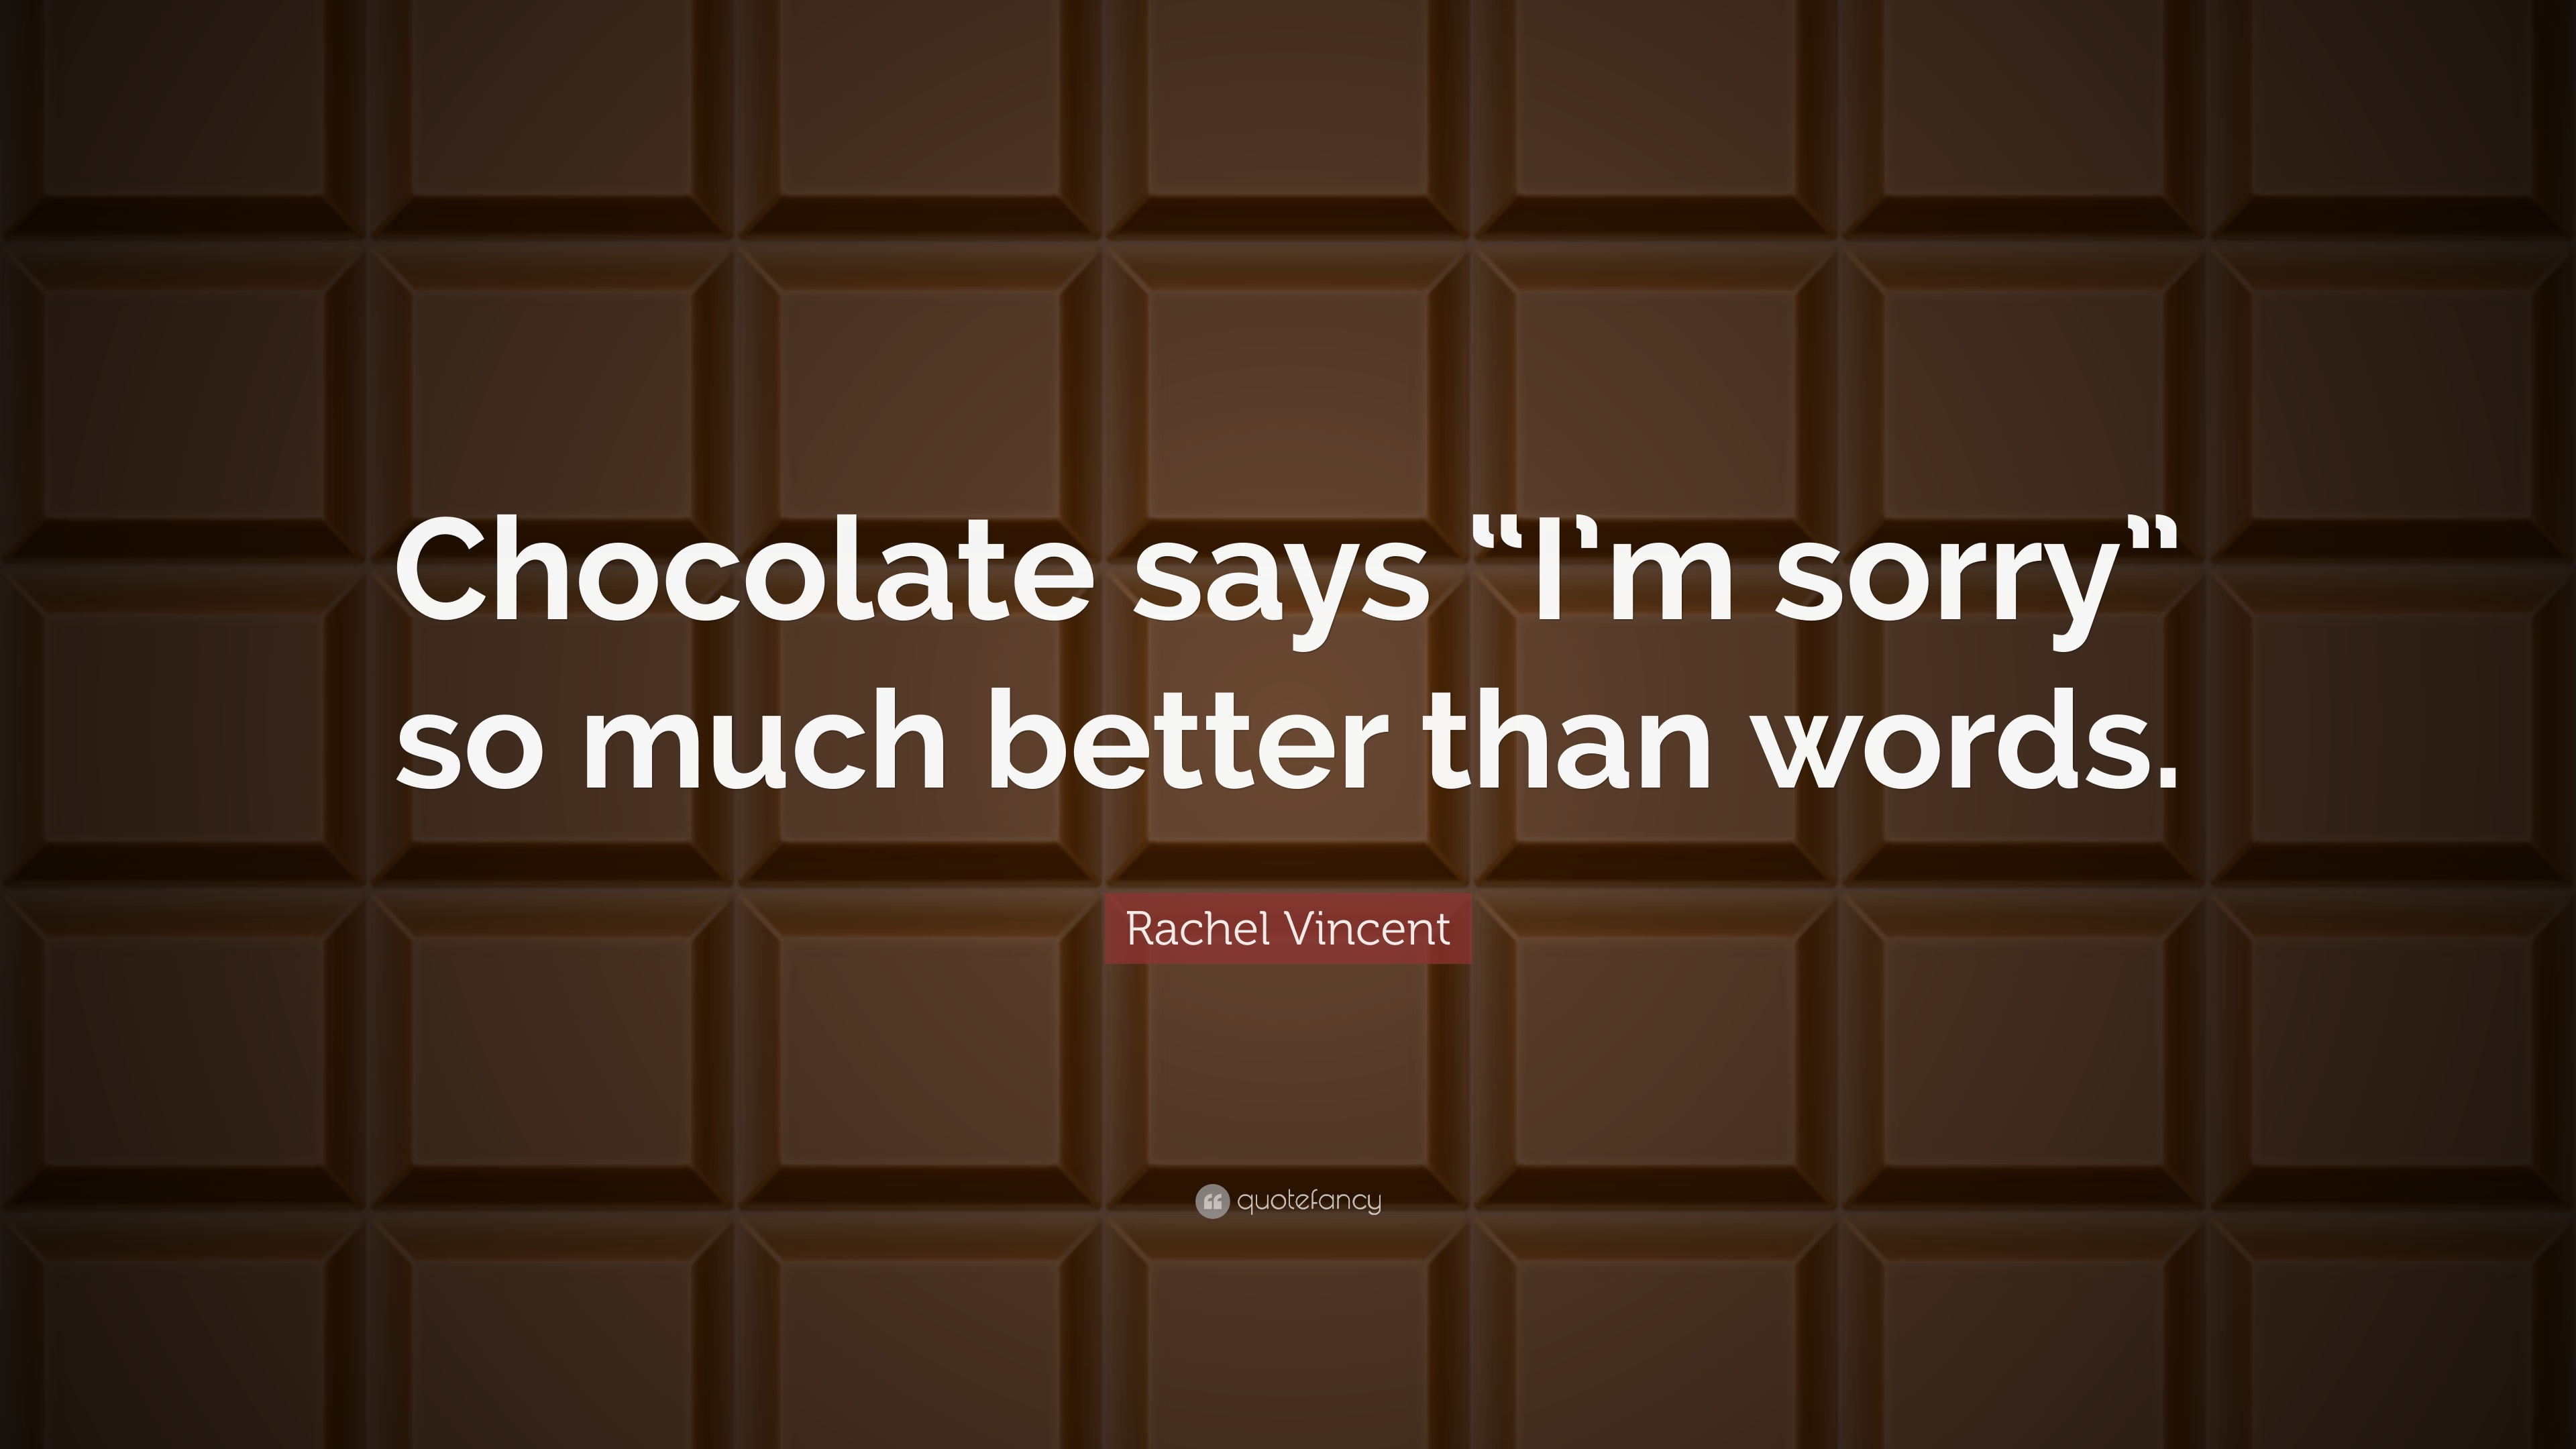 National Chocolate Day Quotes (23 wallpapers) - Quotefancy